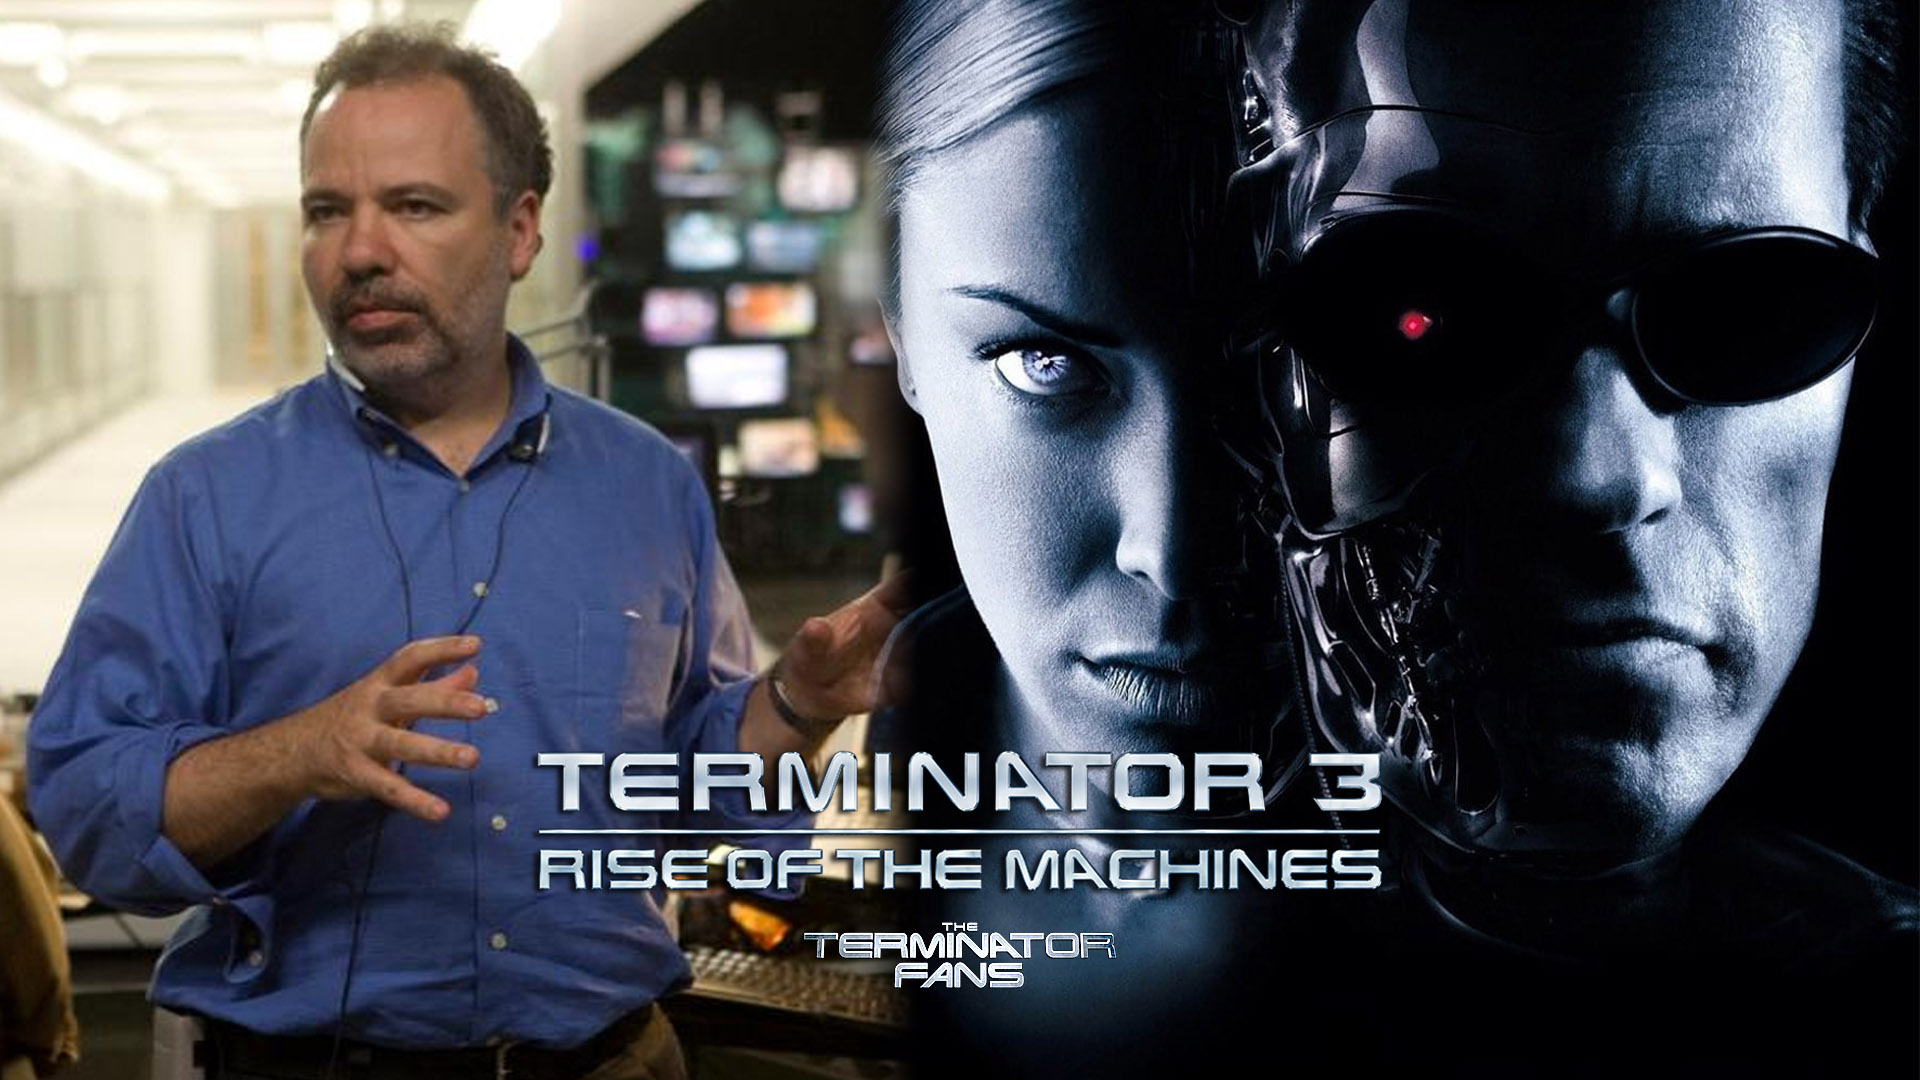 T3 Director Explains Why There Are No Successful Terminator Movies After T2